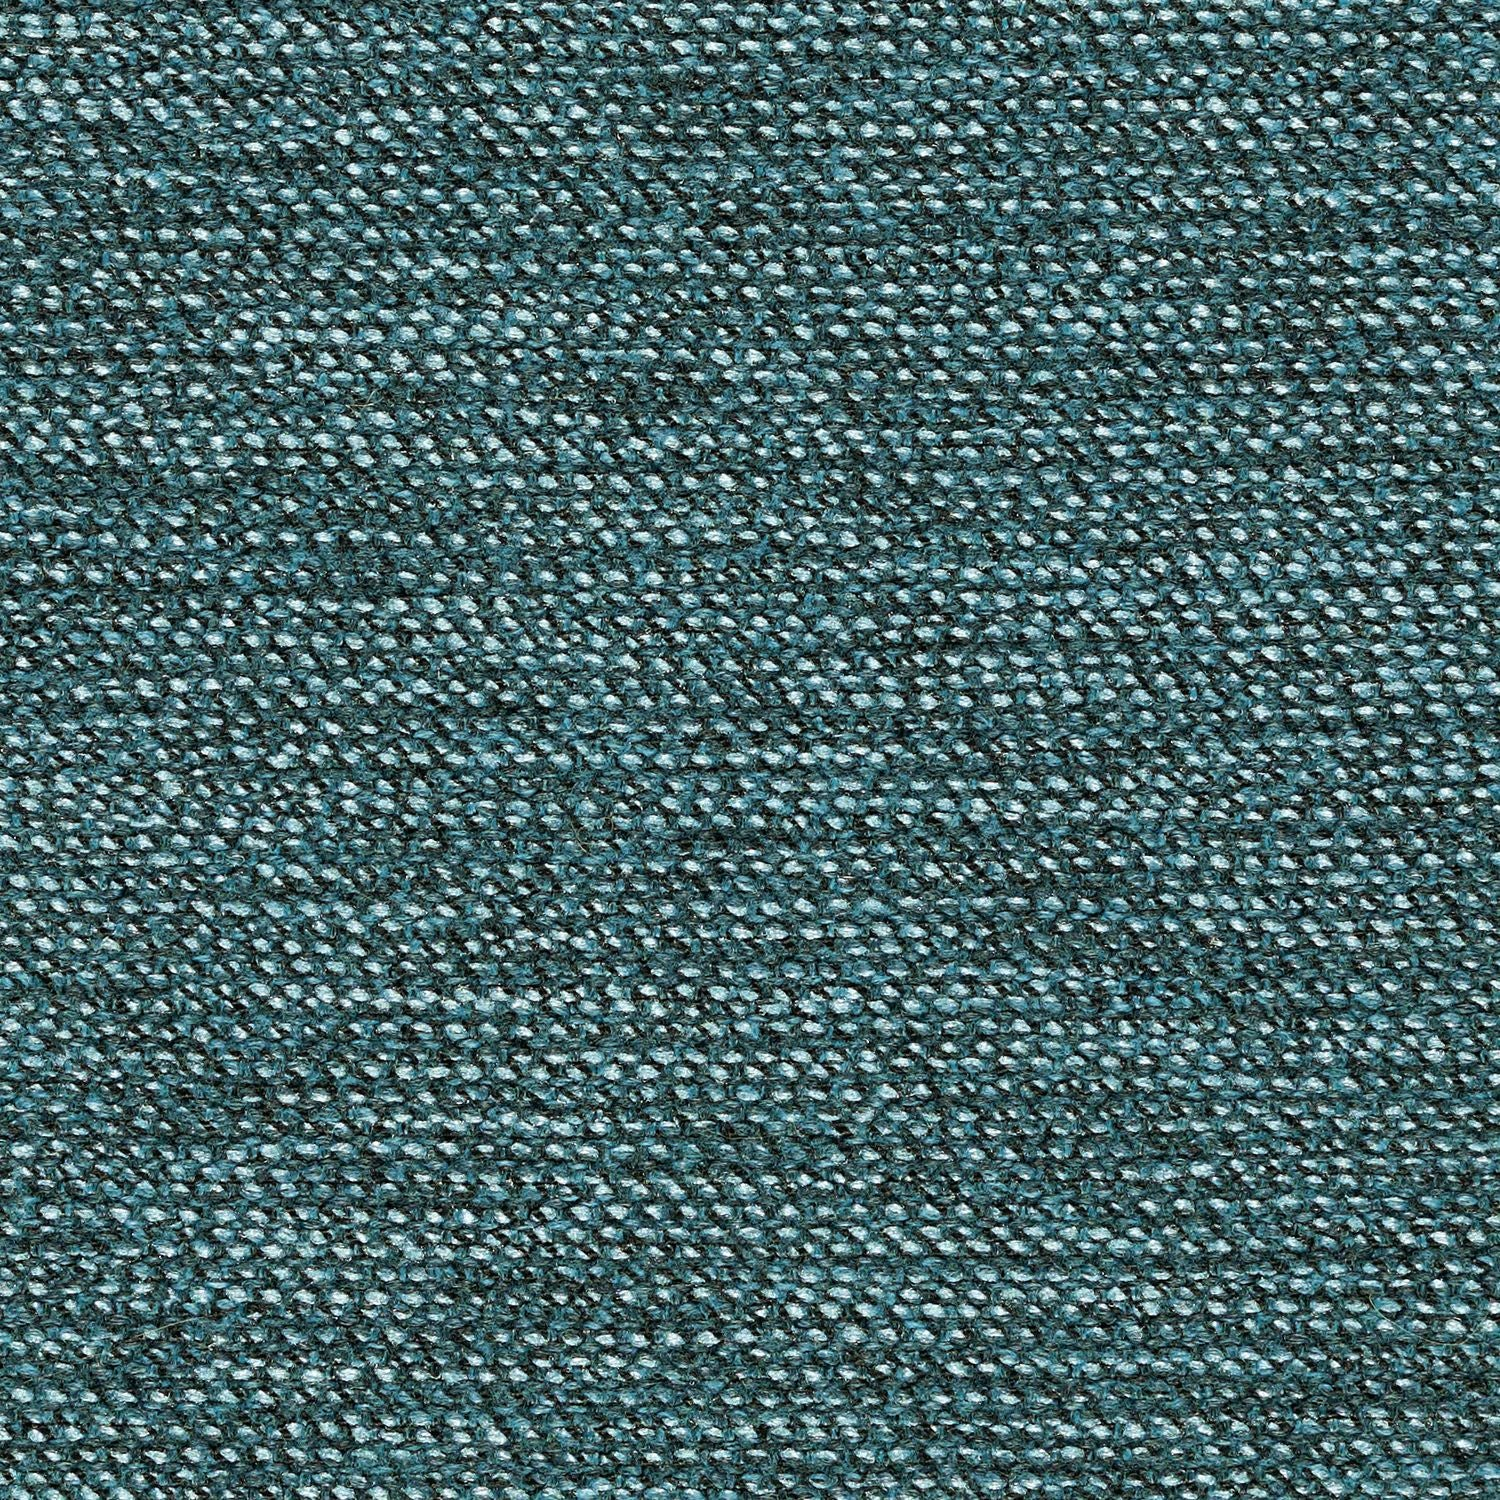 Superspun - Treadle - 4064 - 13